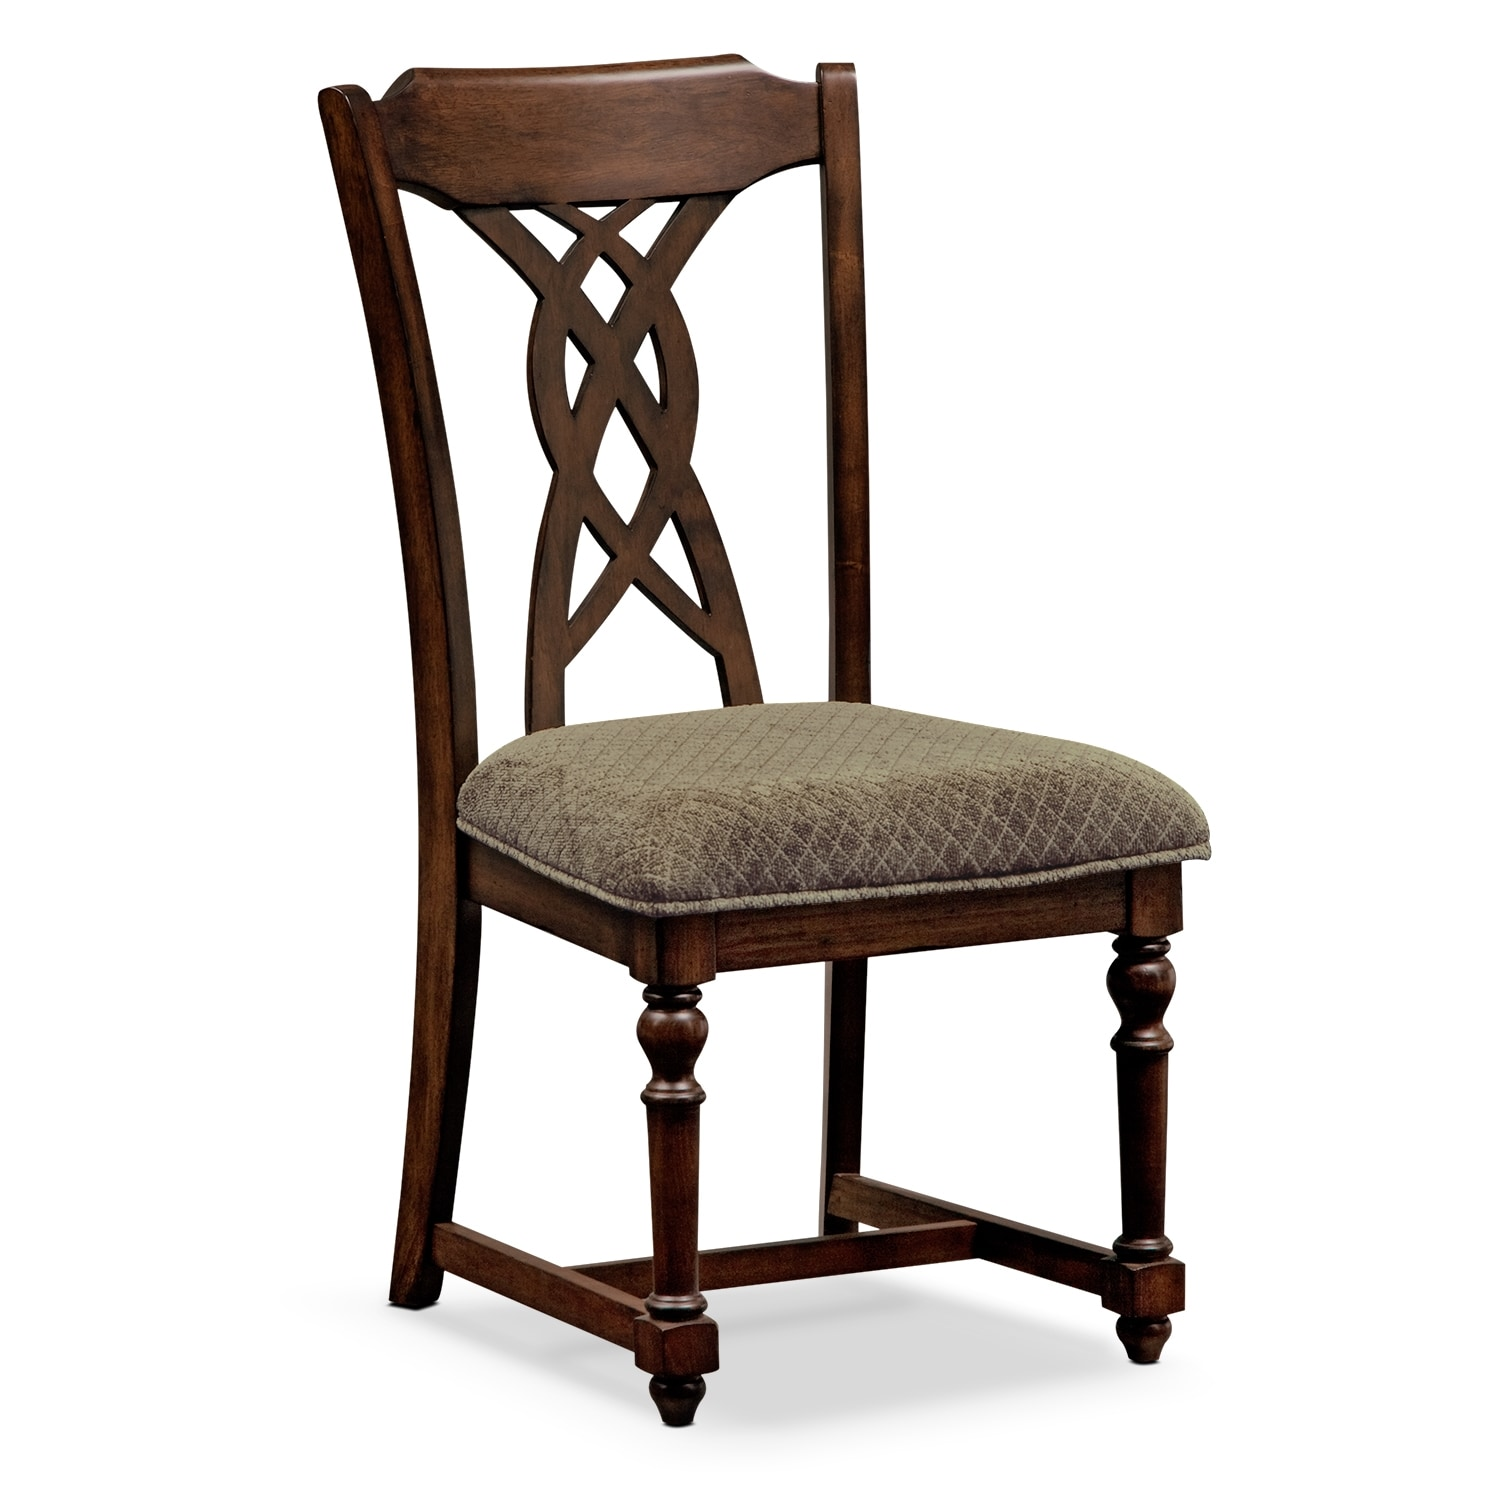 Montrose Dining Room Chair Value City Furniture : 288536 from valuecity.com size 1500 x 1500 jpeg 210kB